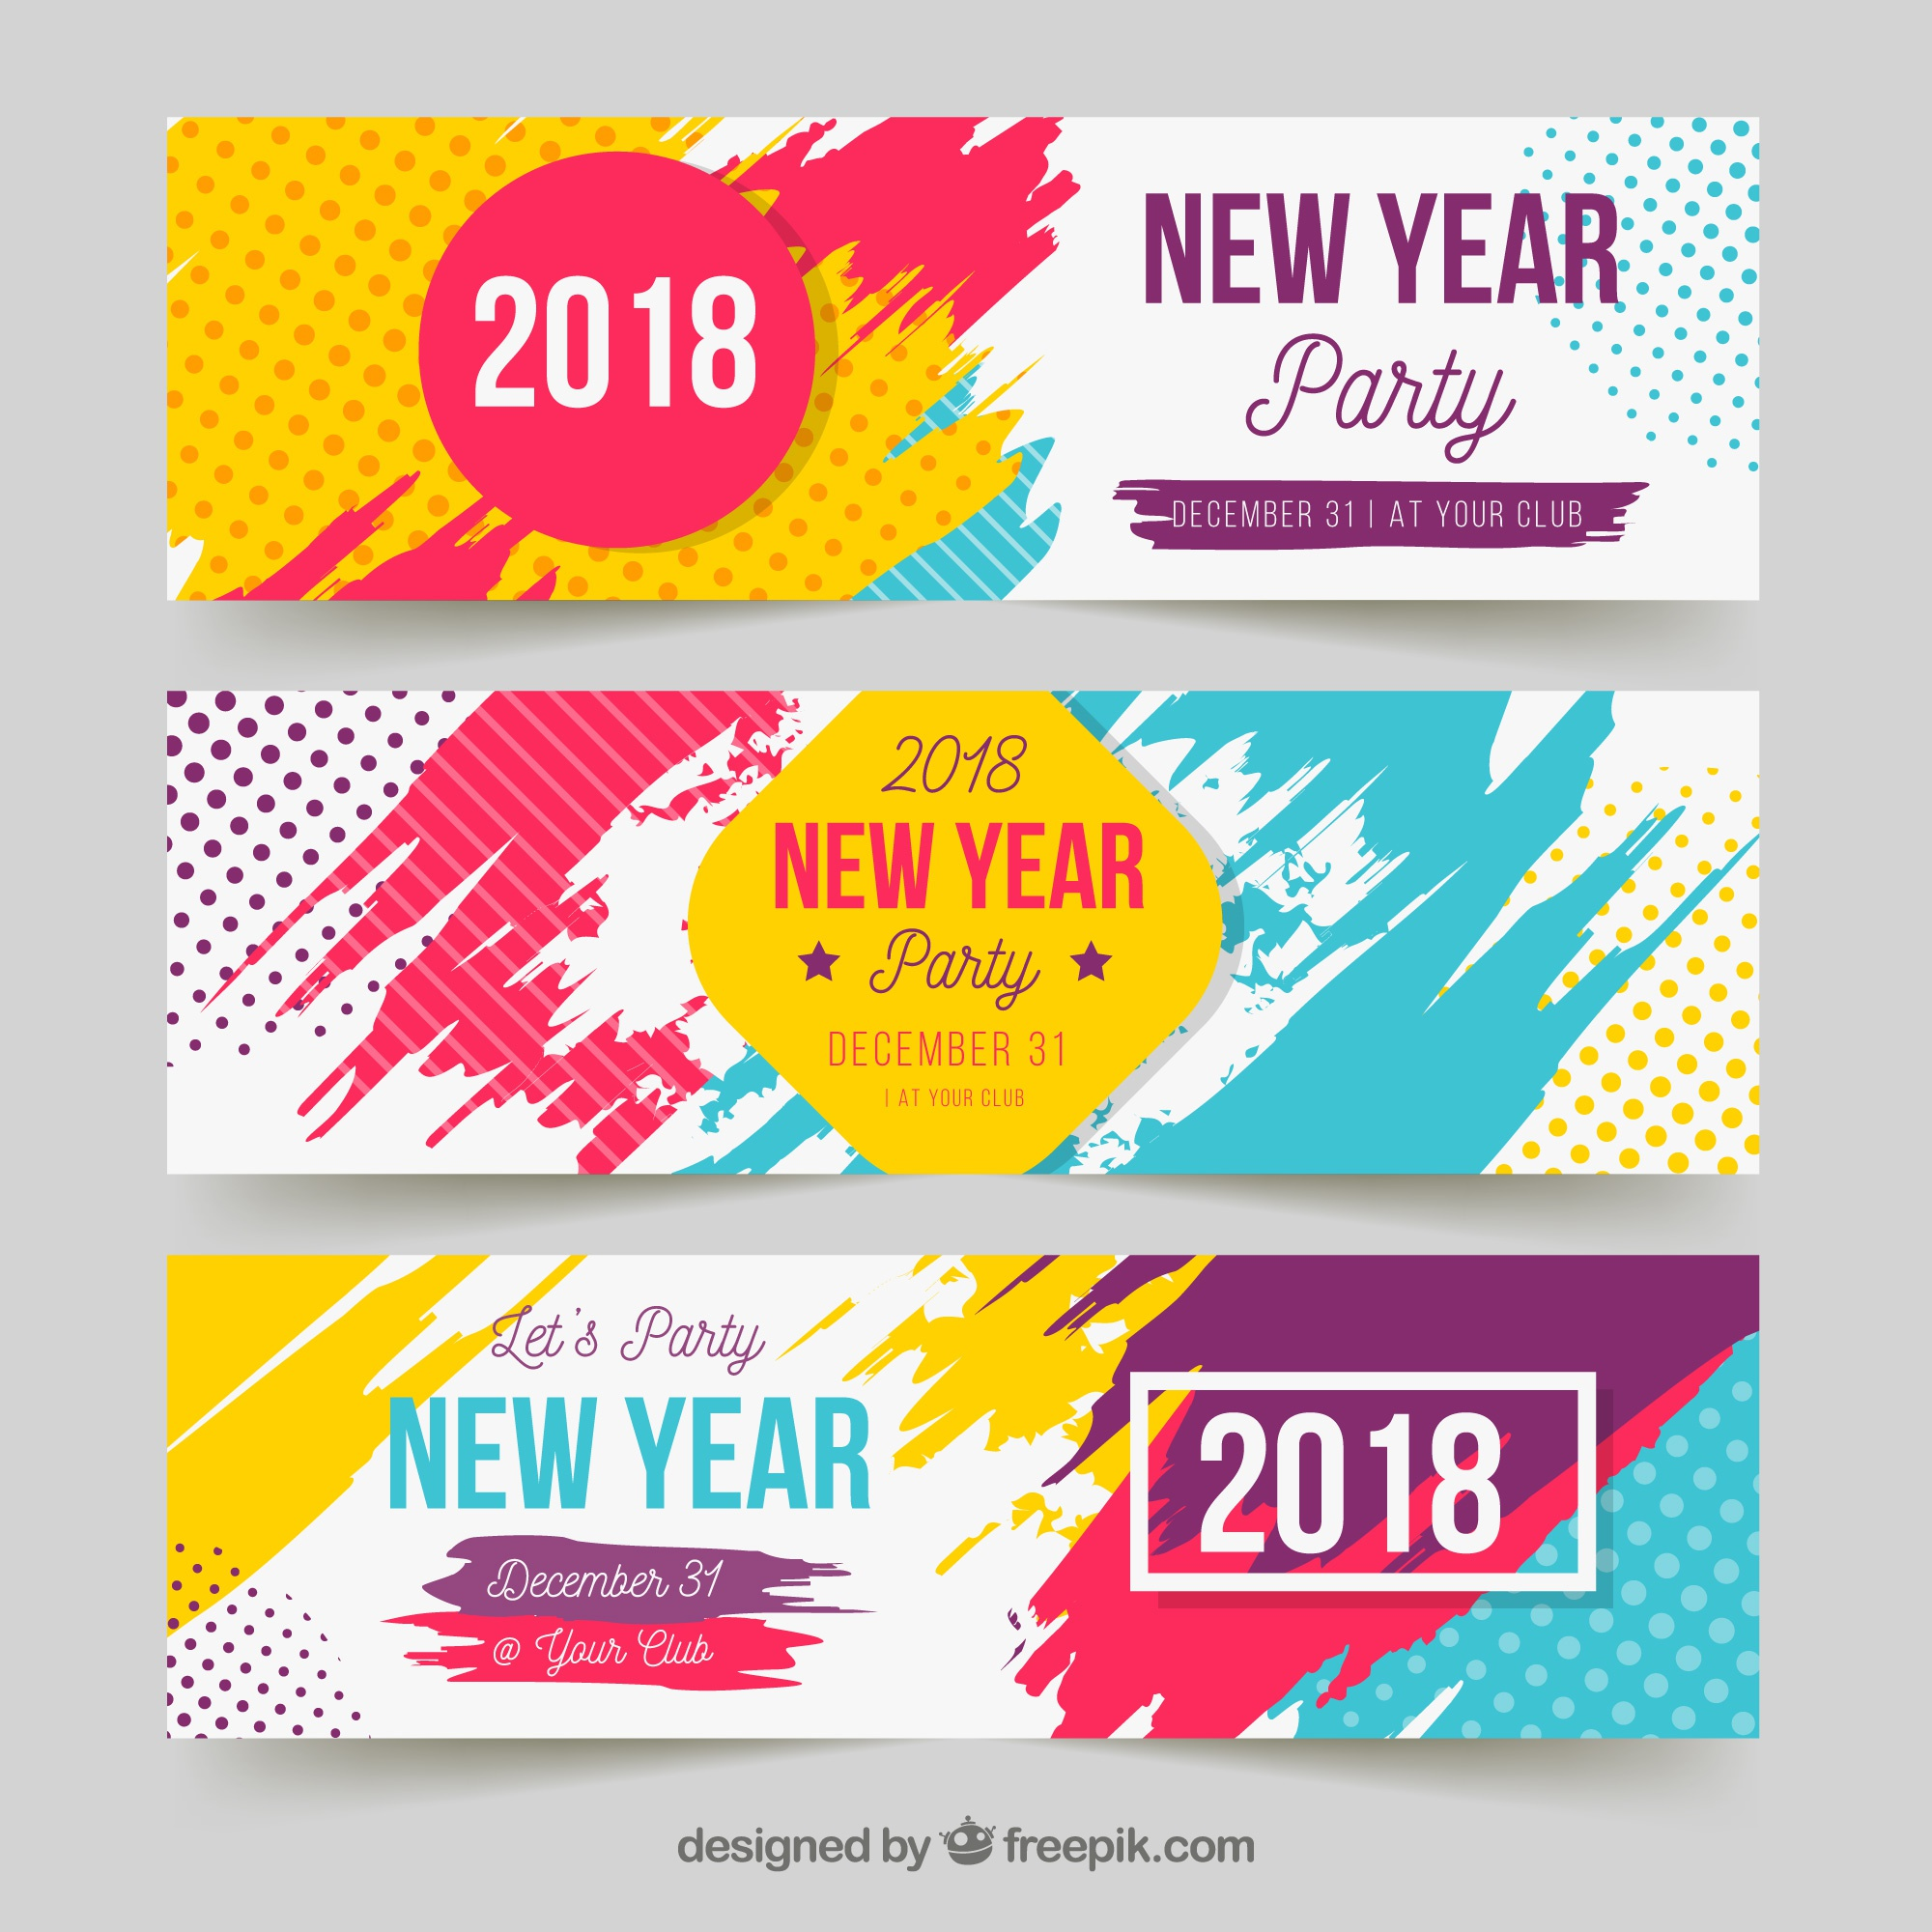 New year party banners in bright colours